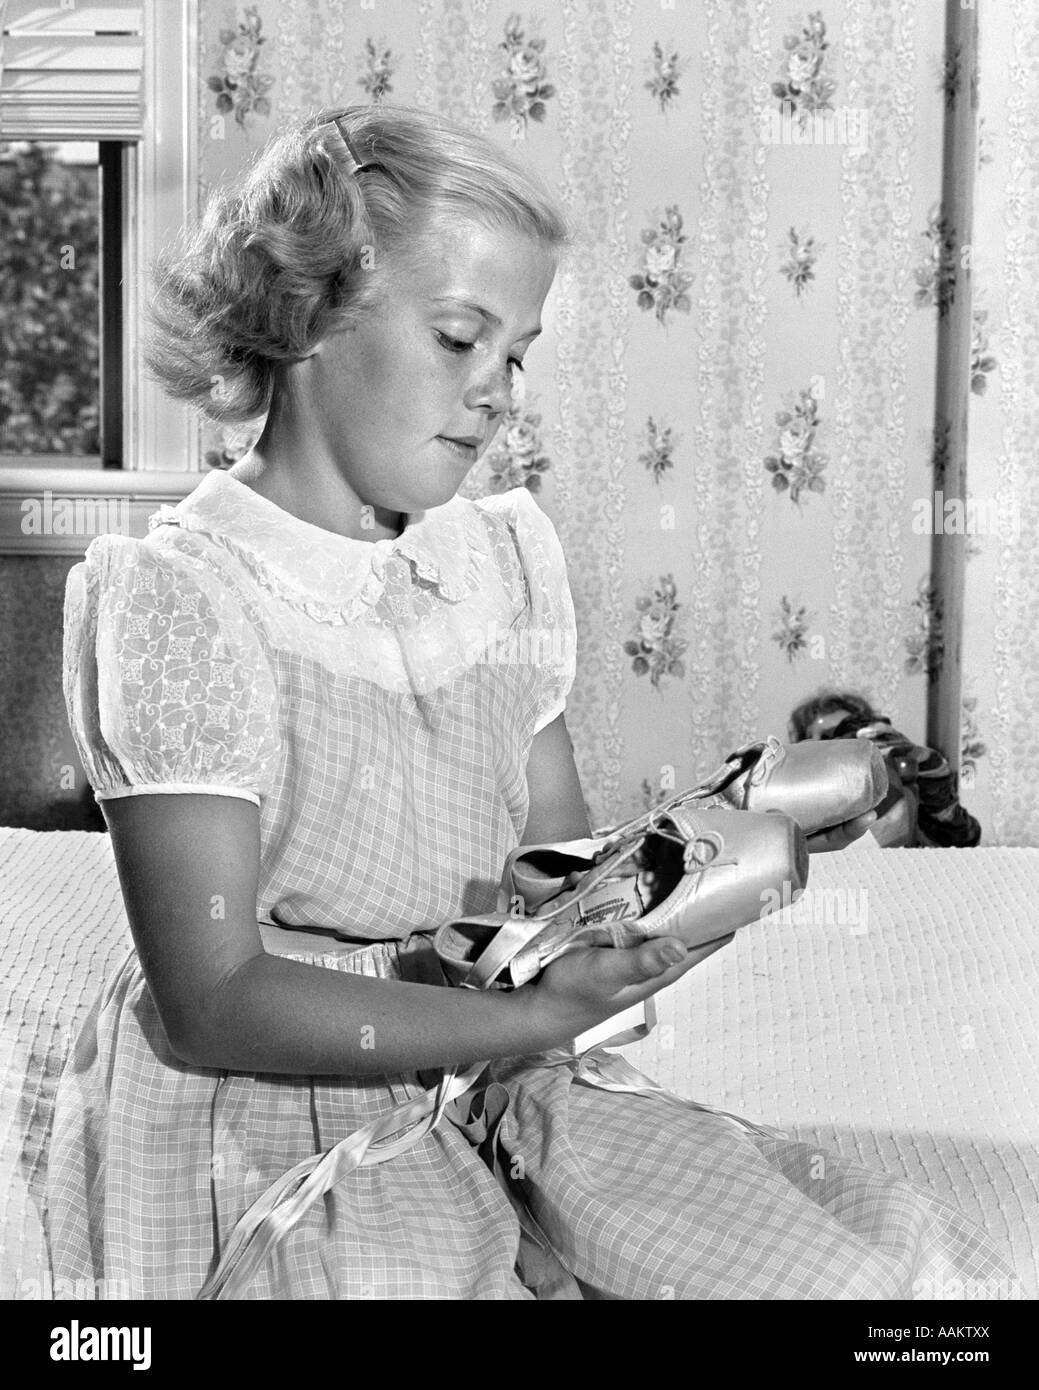 1950s YOUNG PRE-TEEN TEEN GIRL LOOKING WISTFULLY AT HER BALLET SLIPPERS - Stock Image